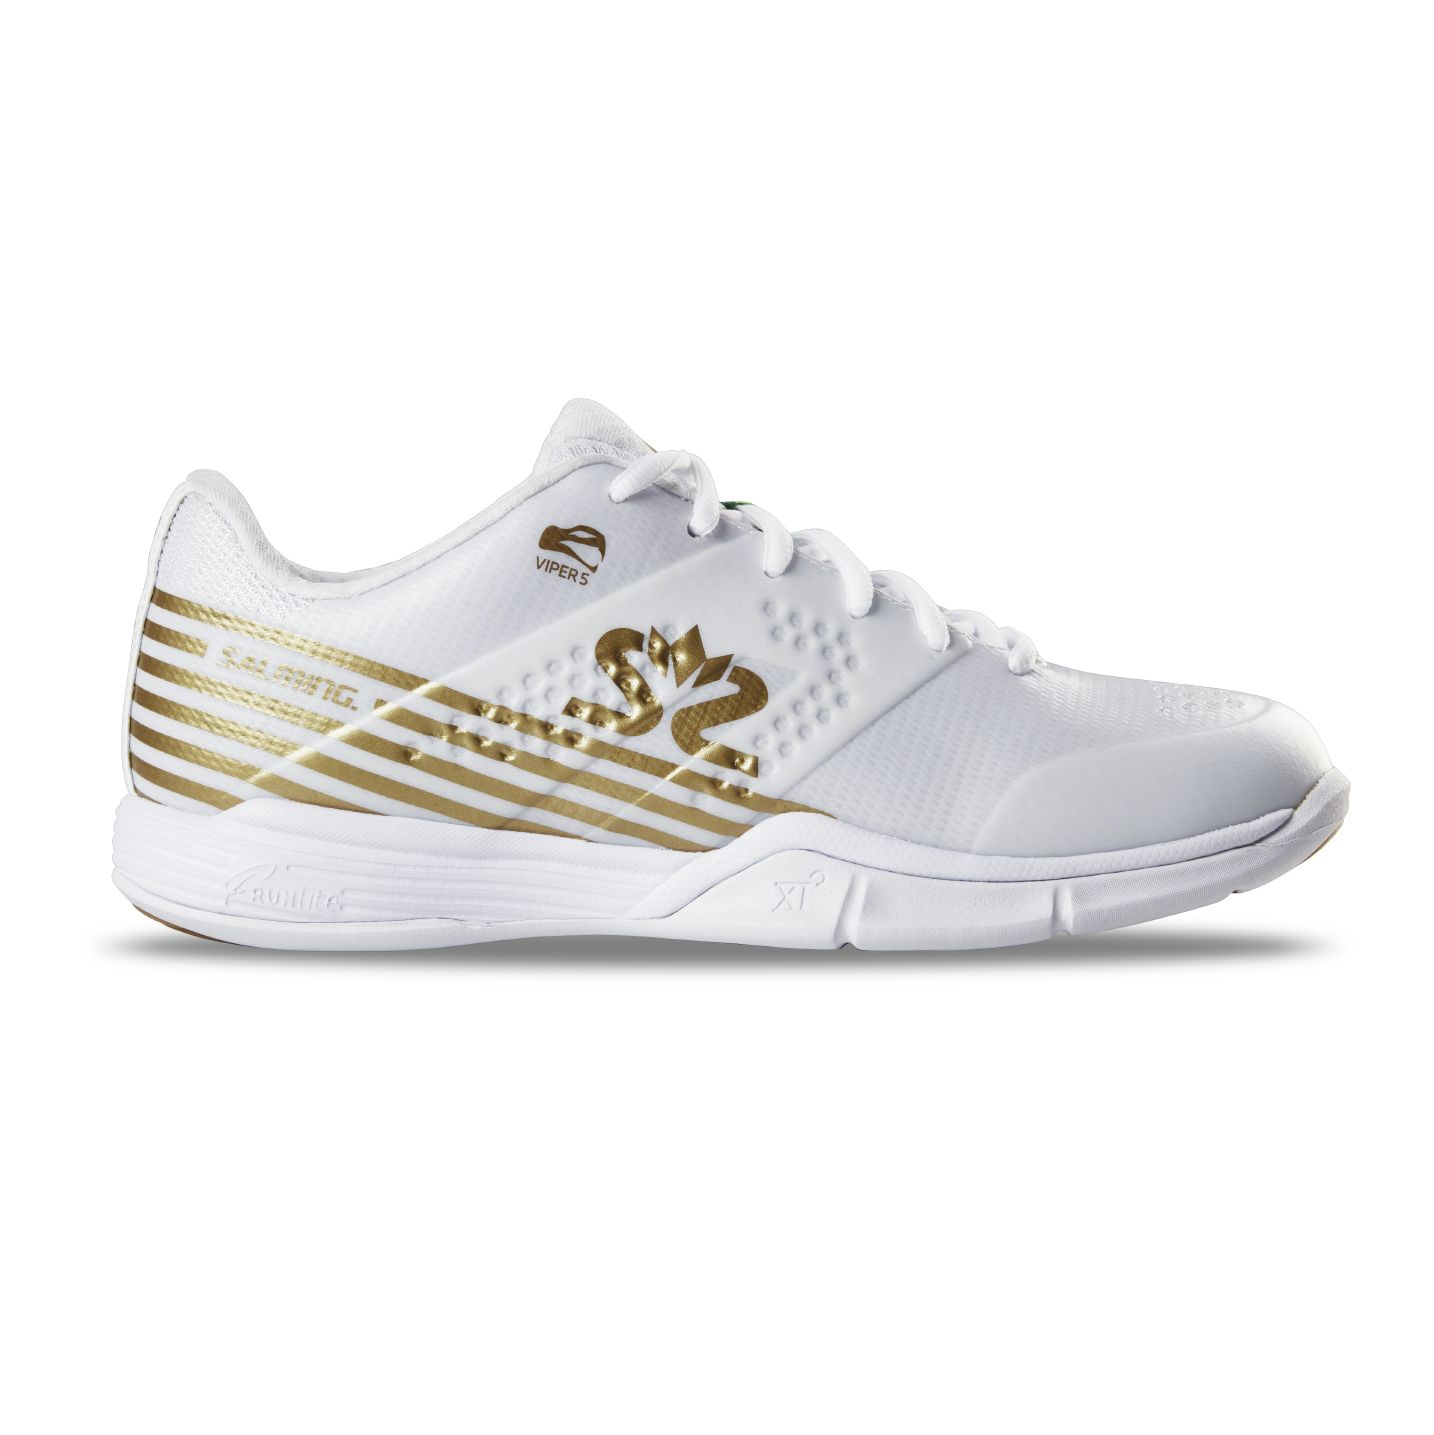 Salming Viper 5 Shoe Women White/Gold 8,5 UK - 42 2/3 EUR - 27,5 cm